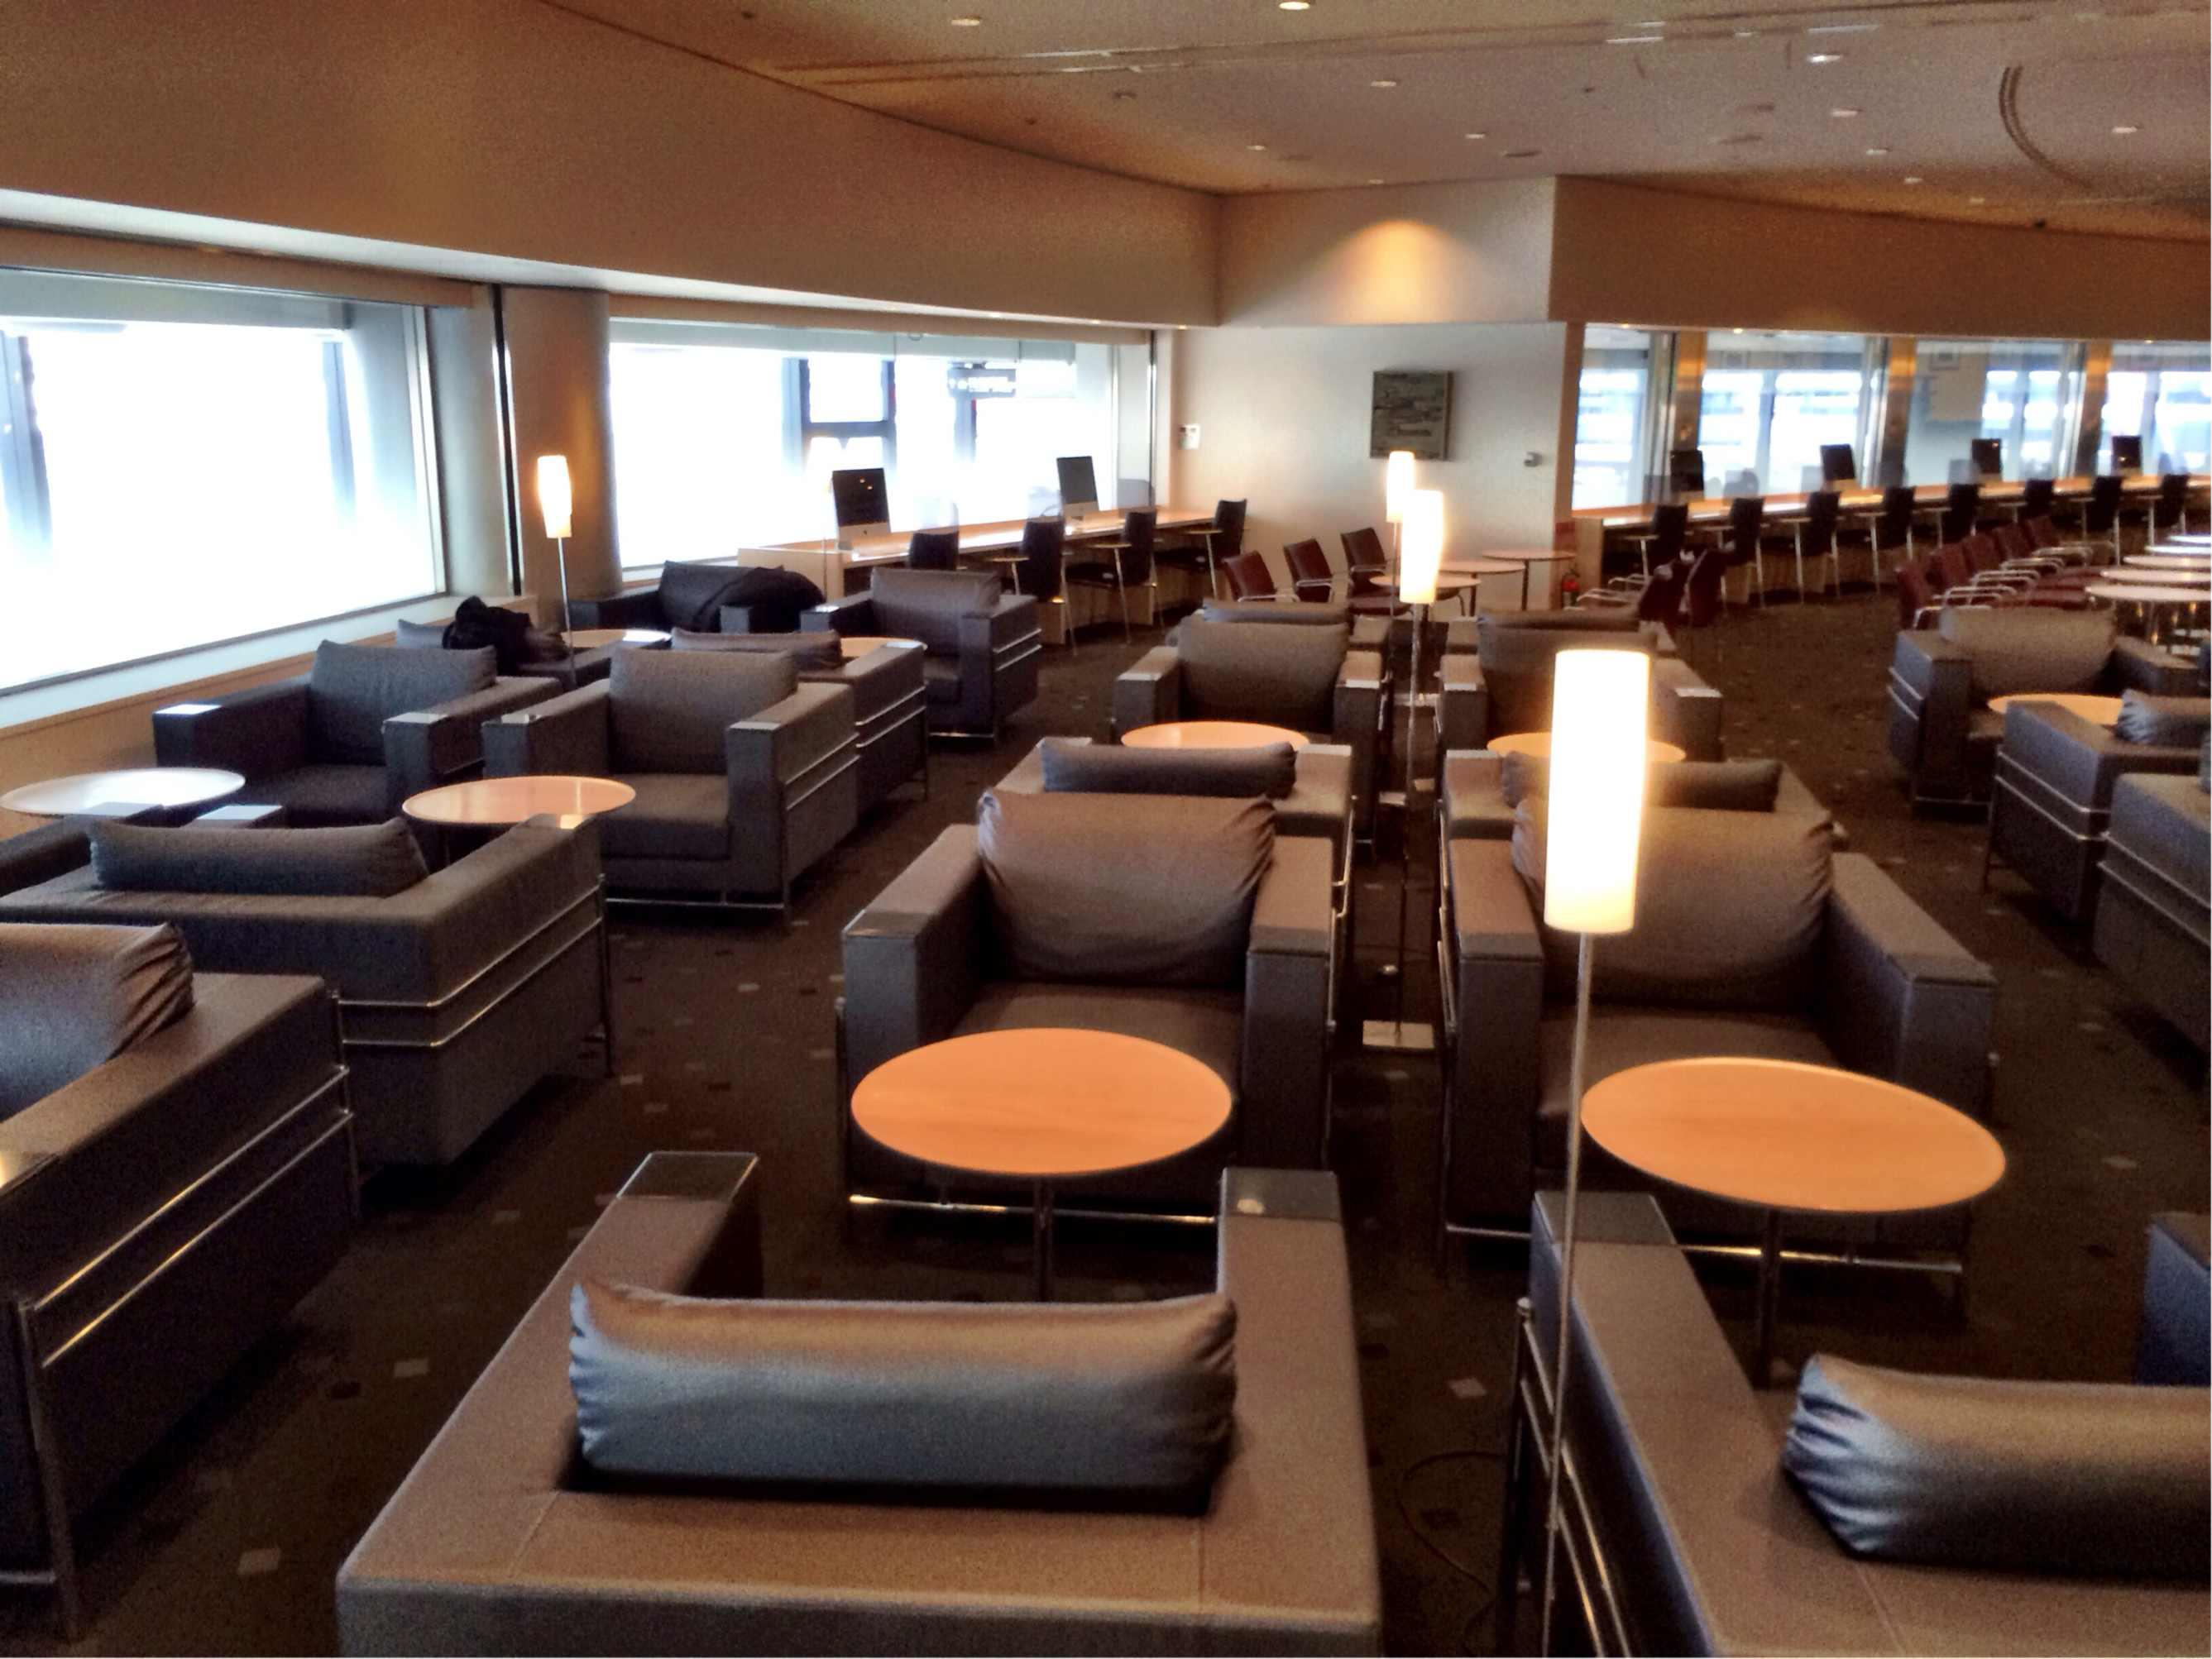 The Ultimate Guide to Delta Sky Club | LoungeBuddy